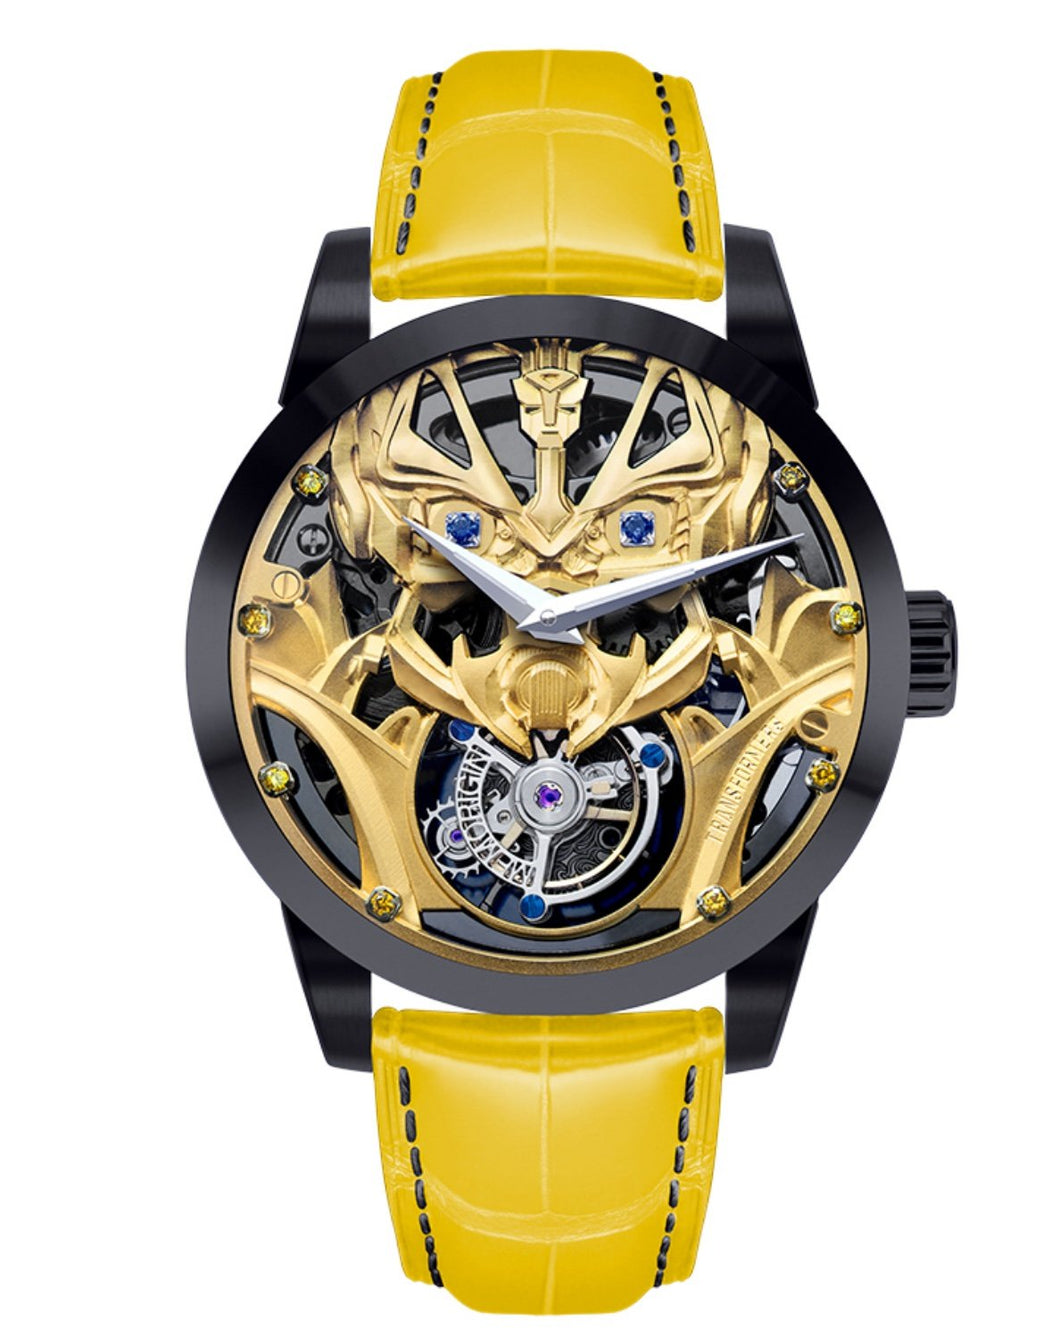 Memorigin Watch Tourbillon Transformers Bumble Bee   1st edition - LAST ONE !!!!!!!!!!!!